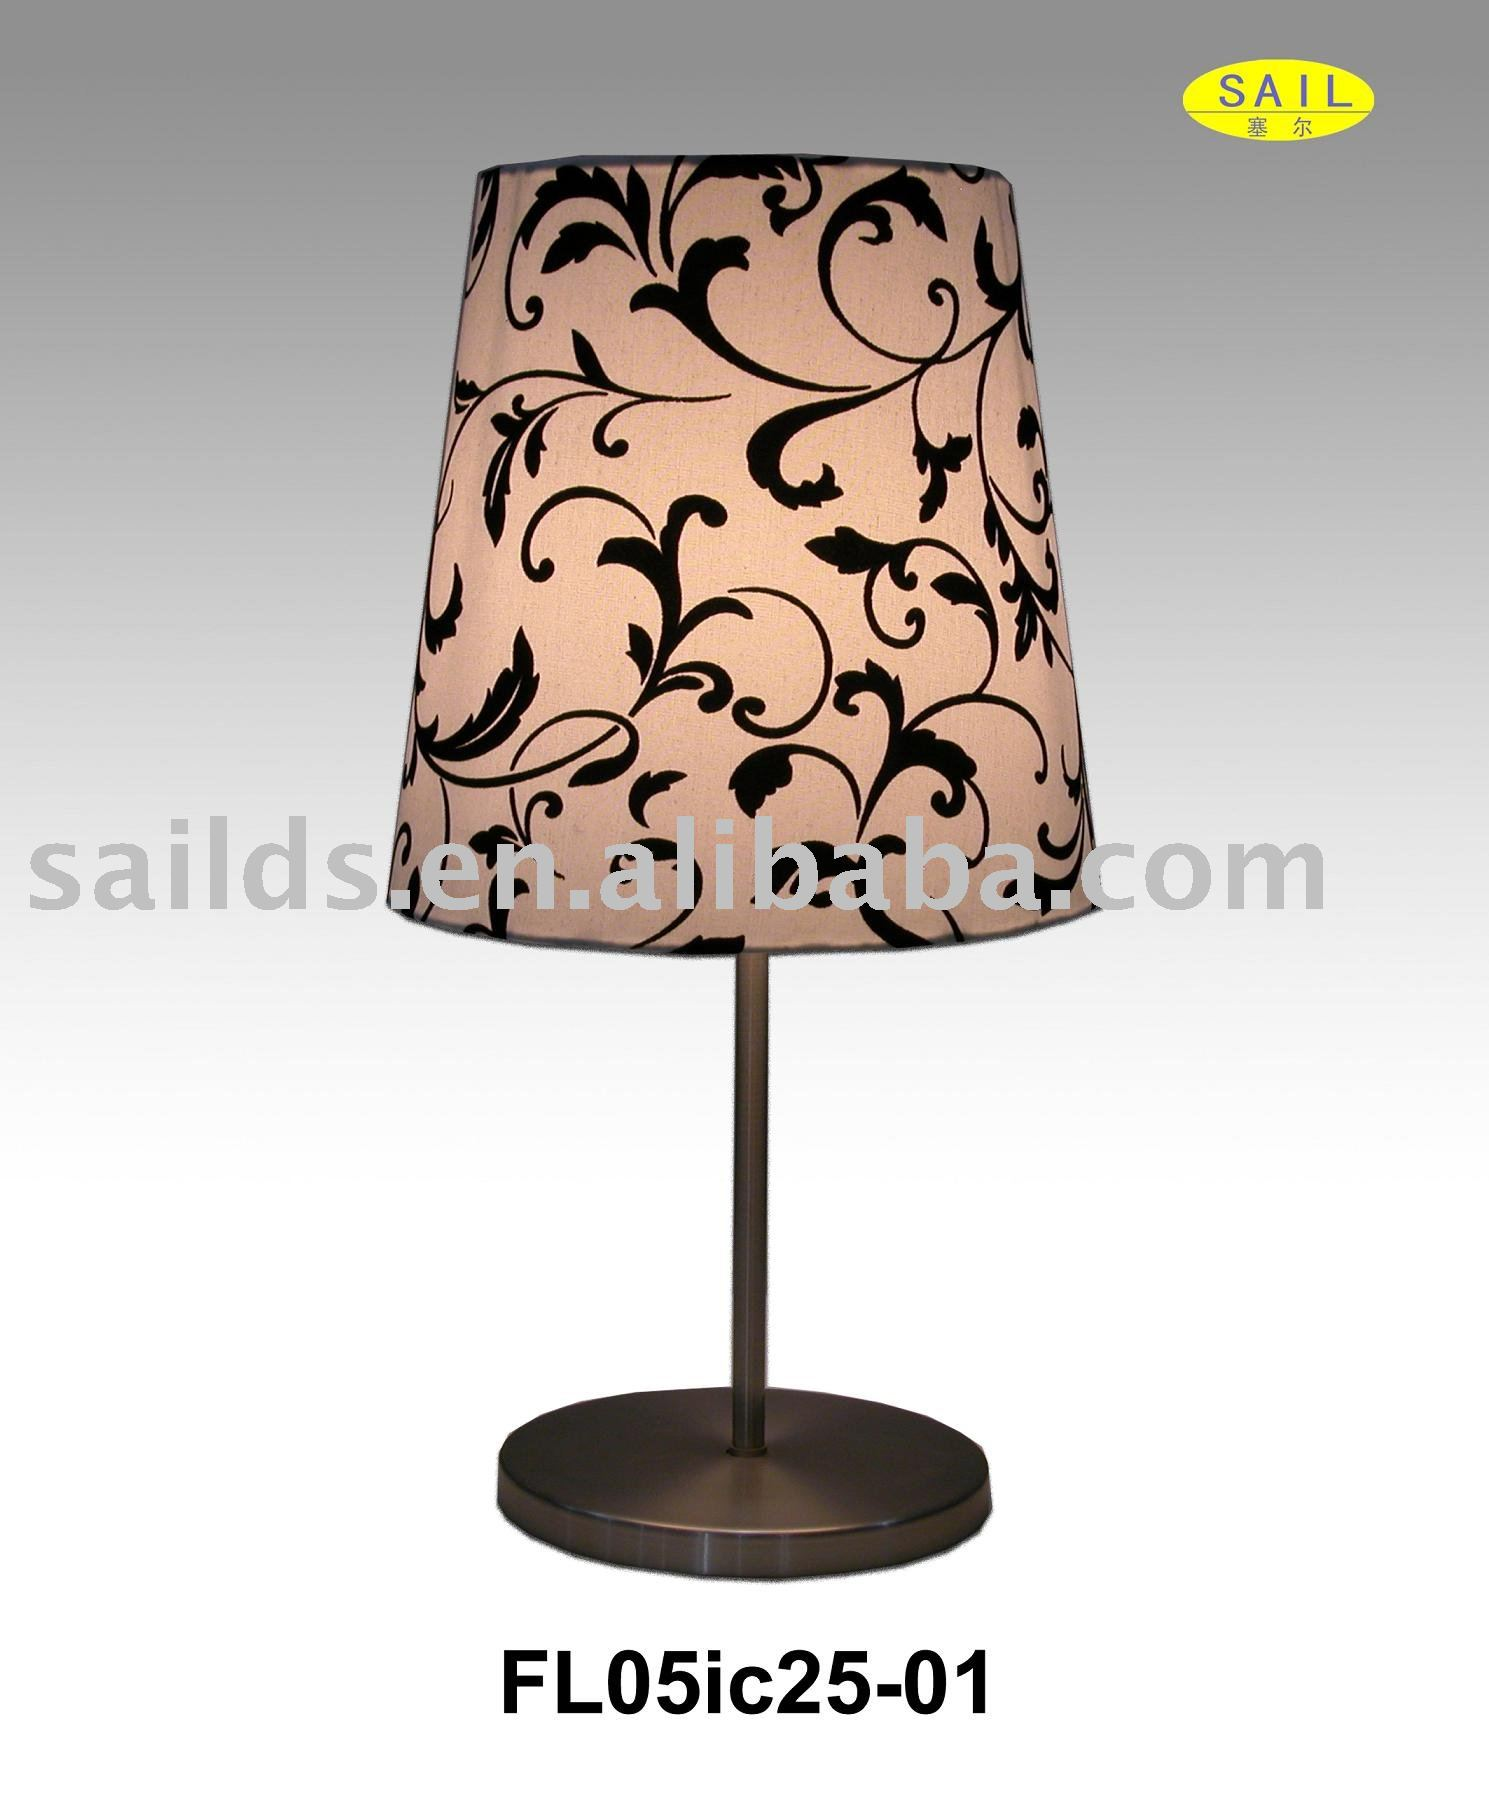 Fashionable table lamp shades buy lamps shadesmodern table lamp fashionable table lamp shades buy lamps shadesmodern table lamp shadepopular lamp shade product on alibaba geotapseo Image collections